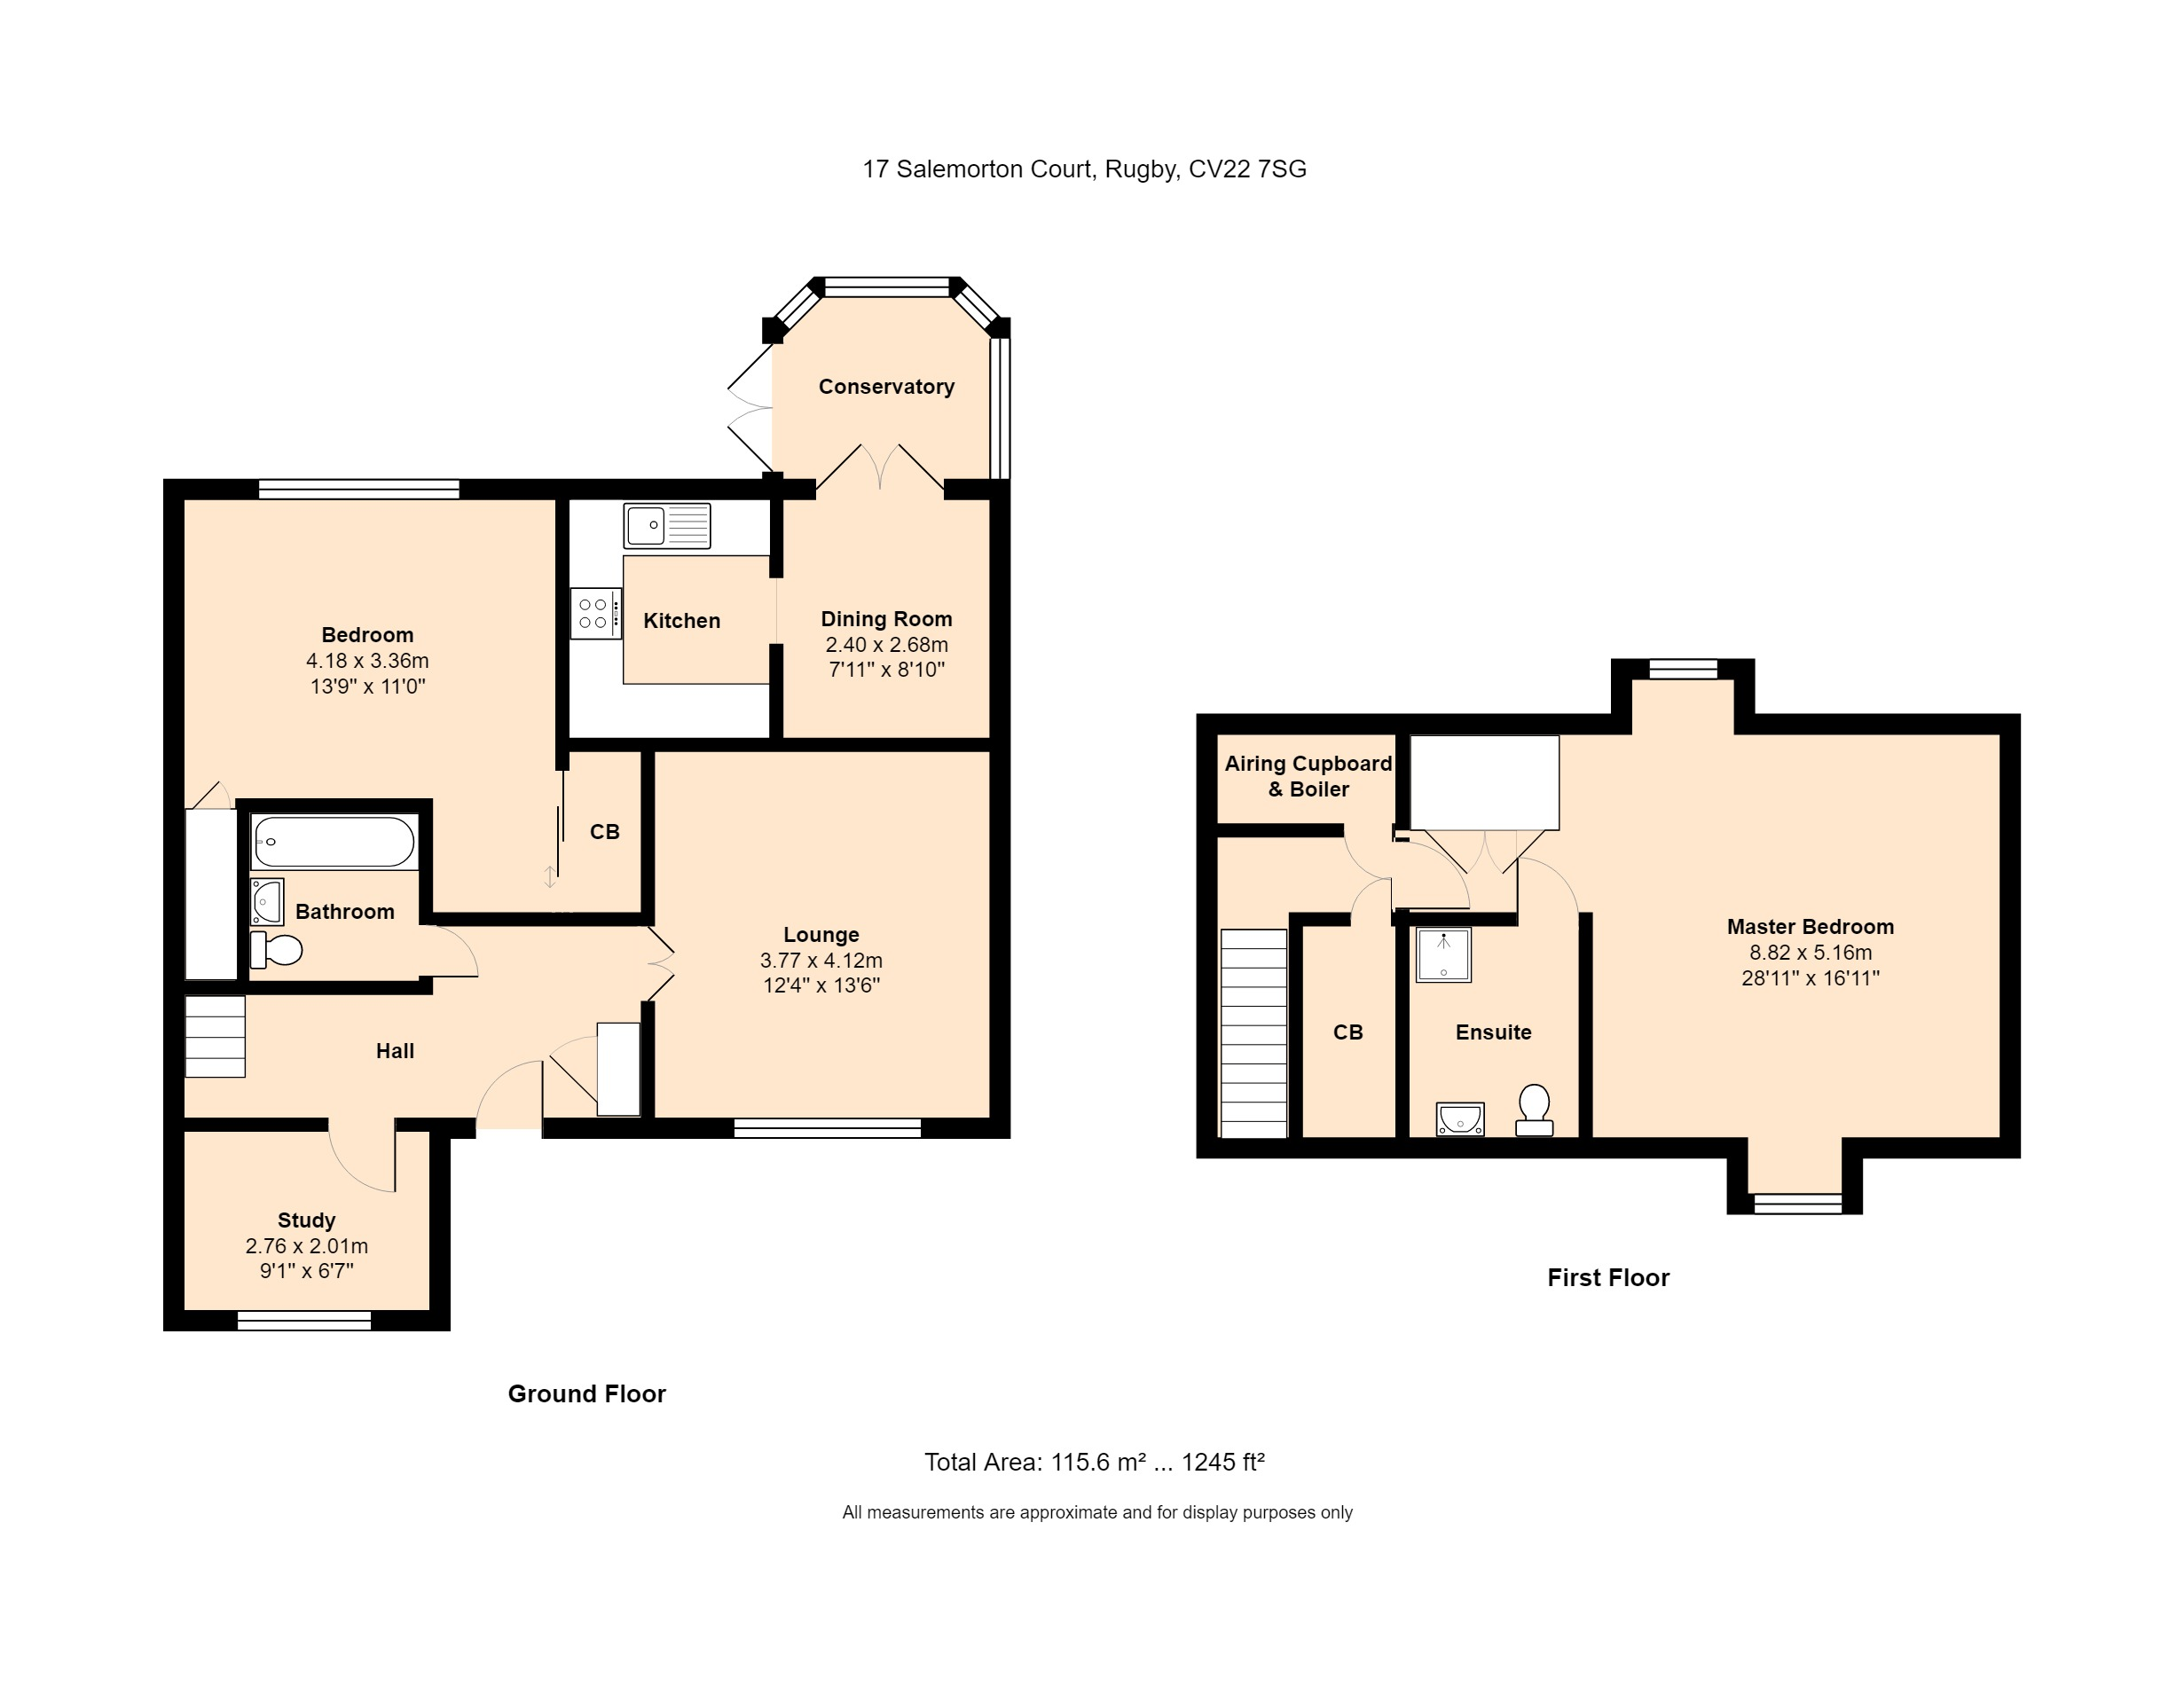 17 Salemorton Court Floorplan